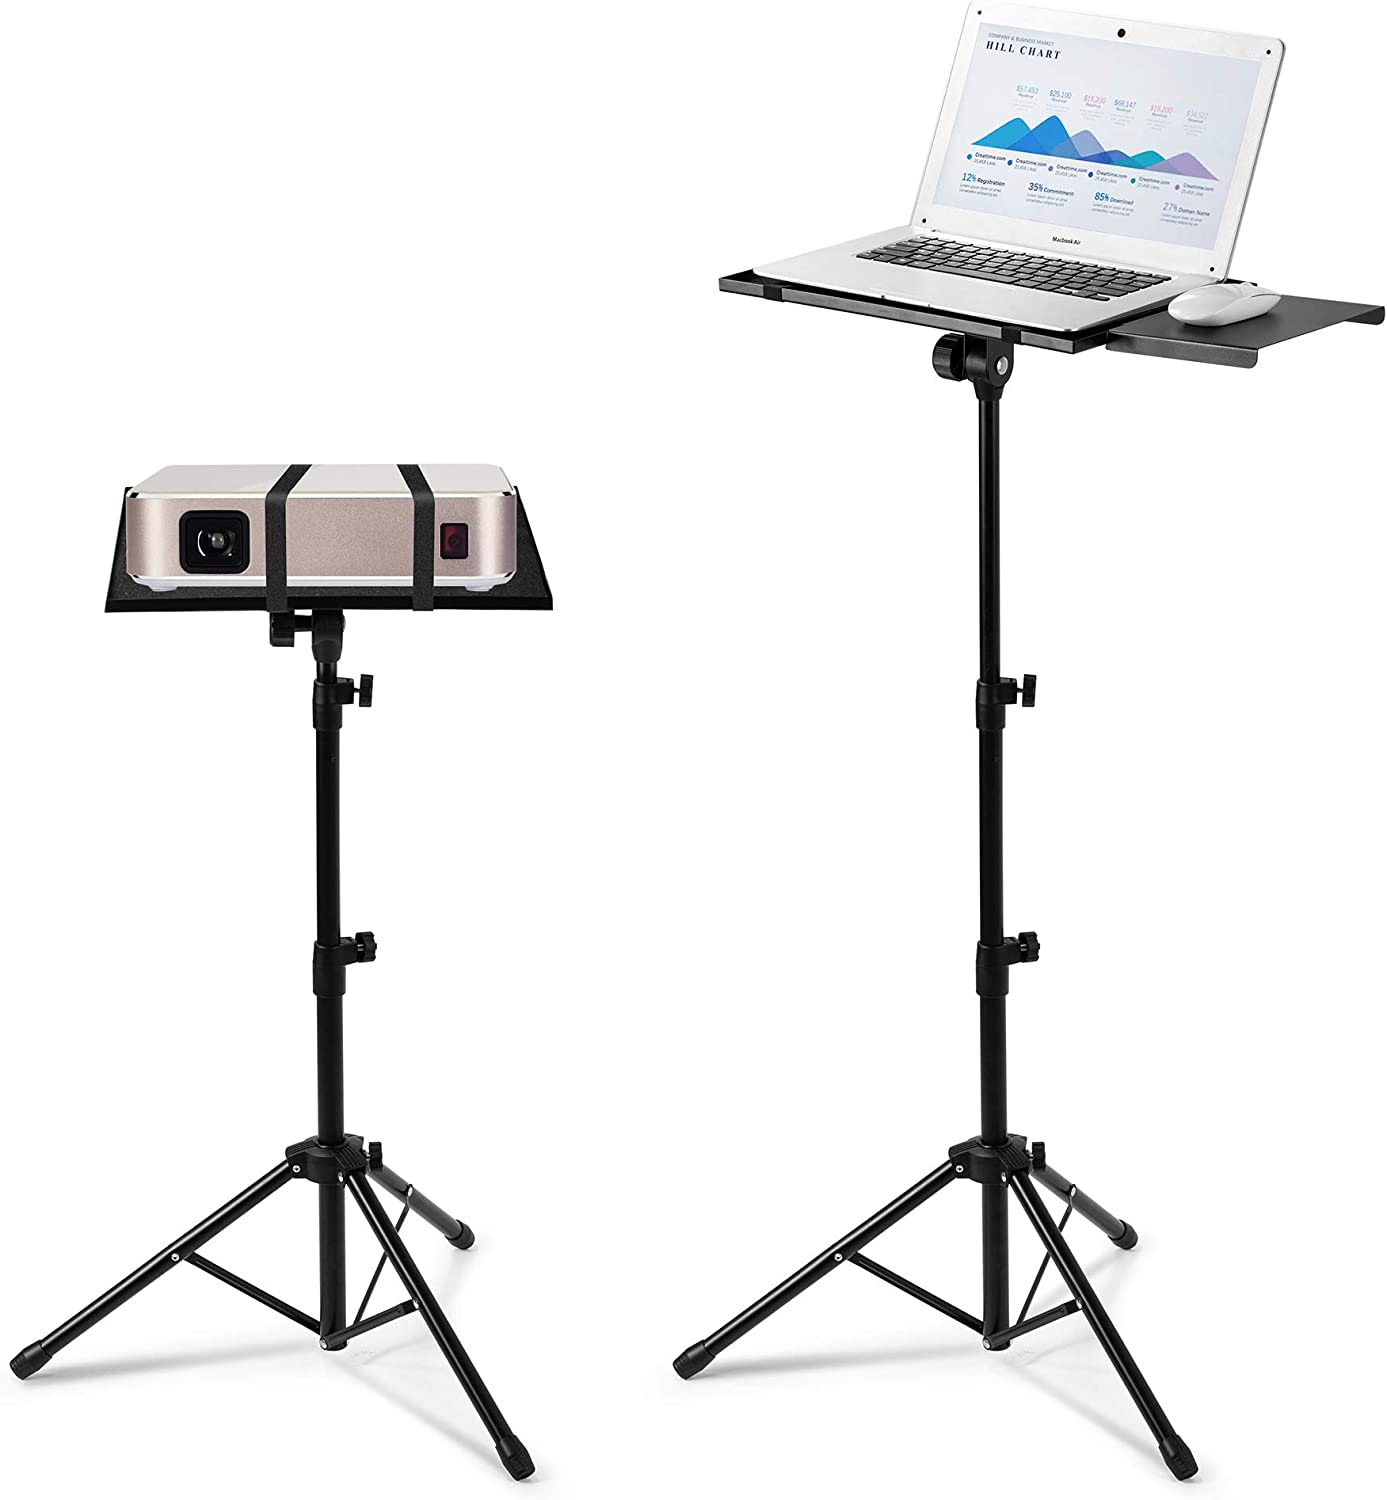 Adjustable Laptop Projector Stand, 半額 Portable 高額売筋 Notebook Computer